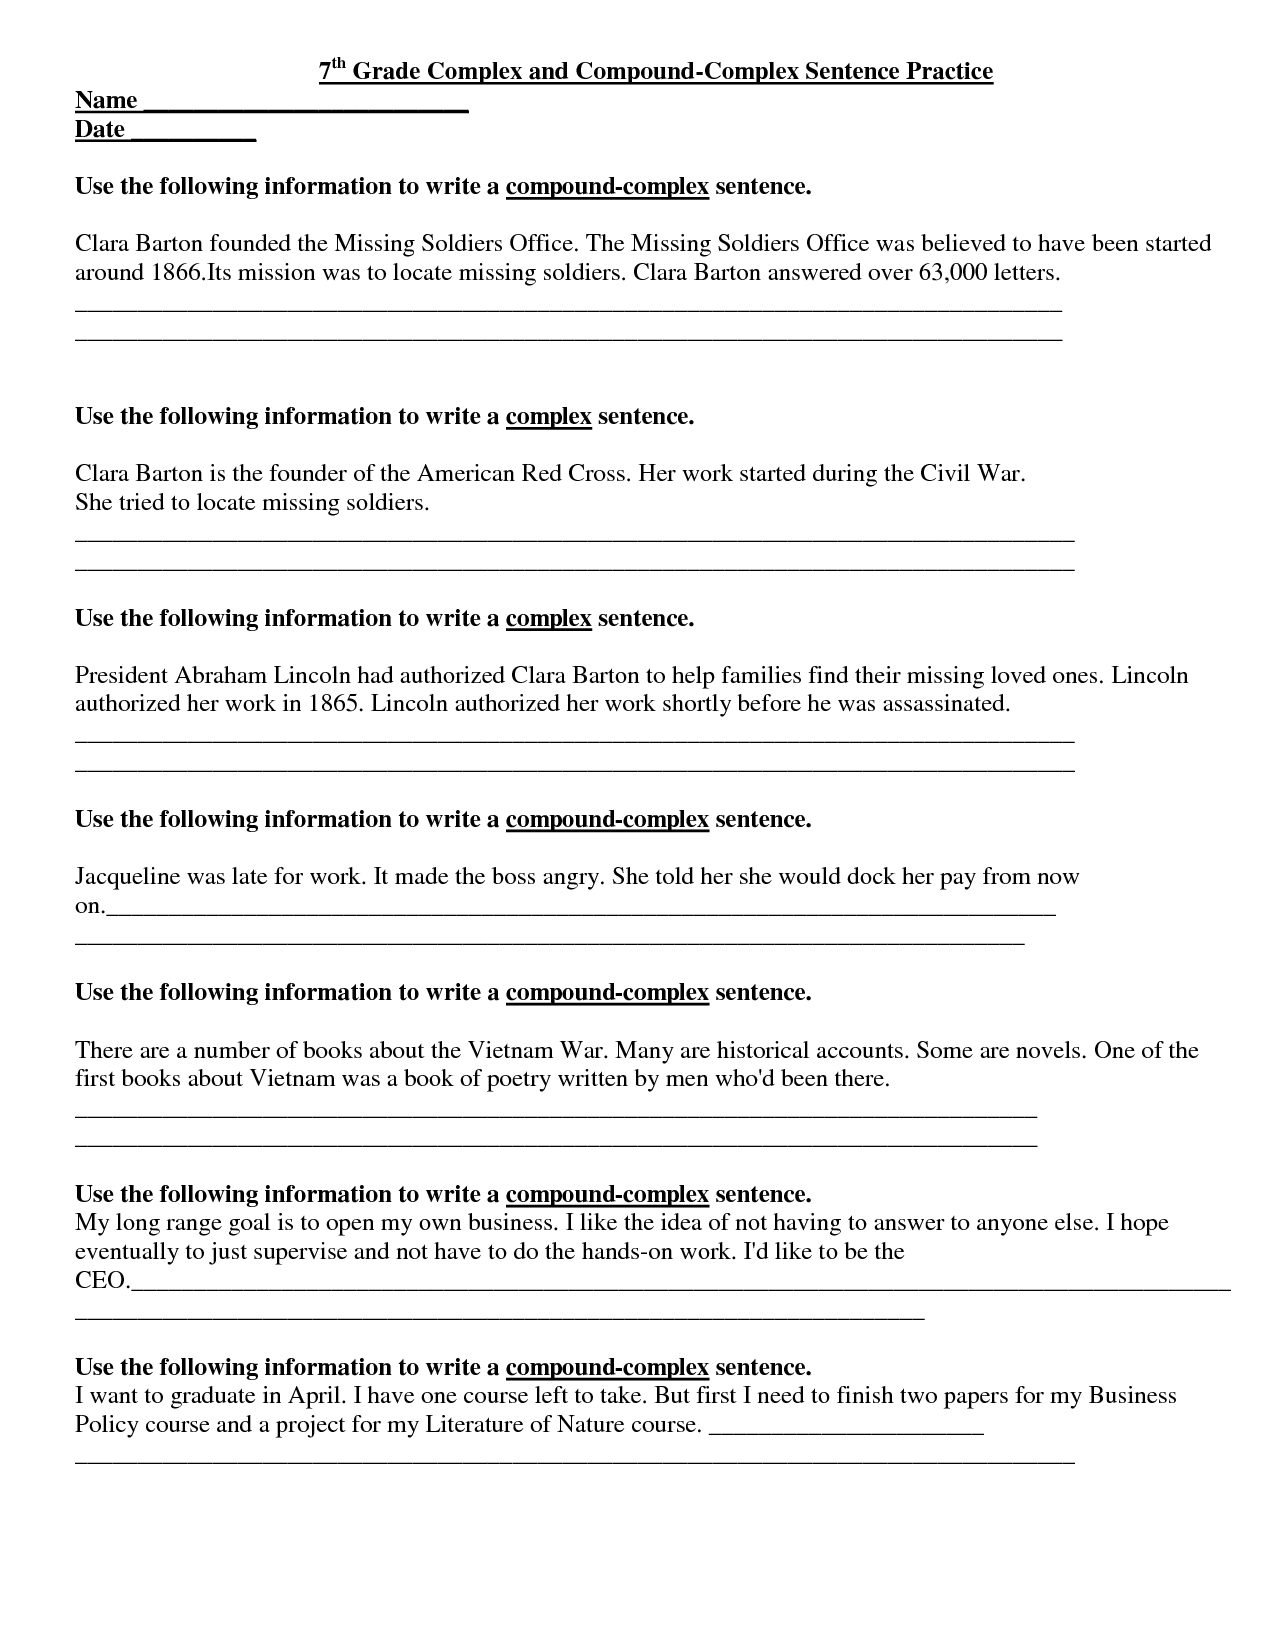 Worksheets 7th Grade Reading Comprehension Worksheets Free free 4th grade reading comprehension passages and questions 36 weeks printable pdf worksheets to